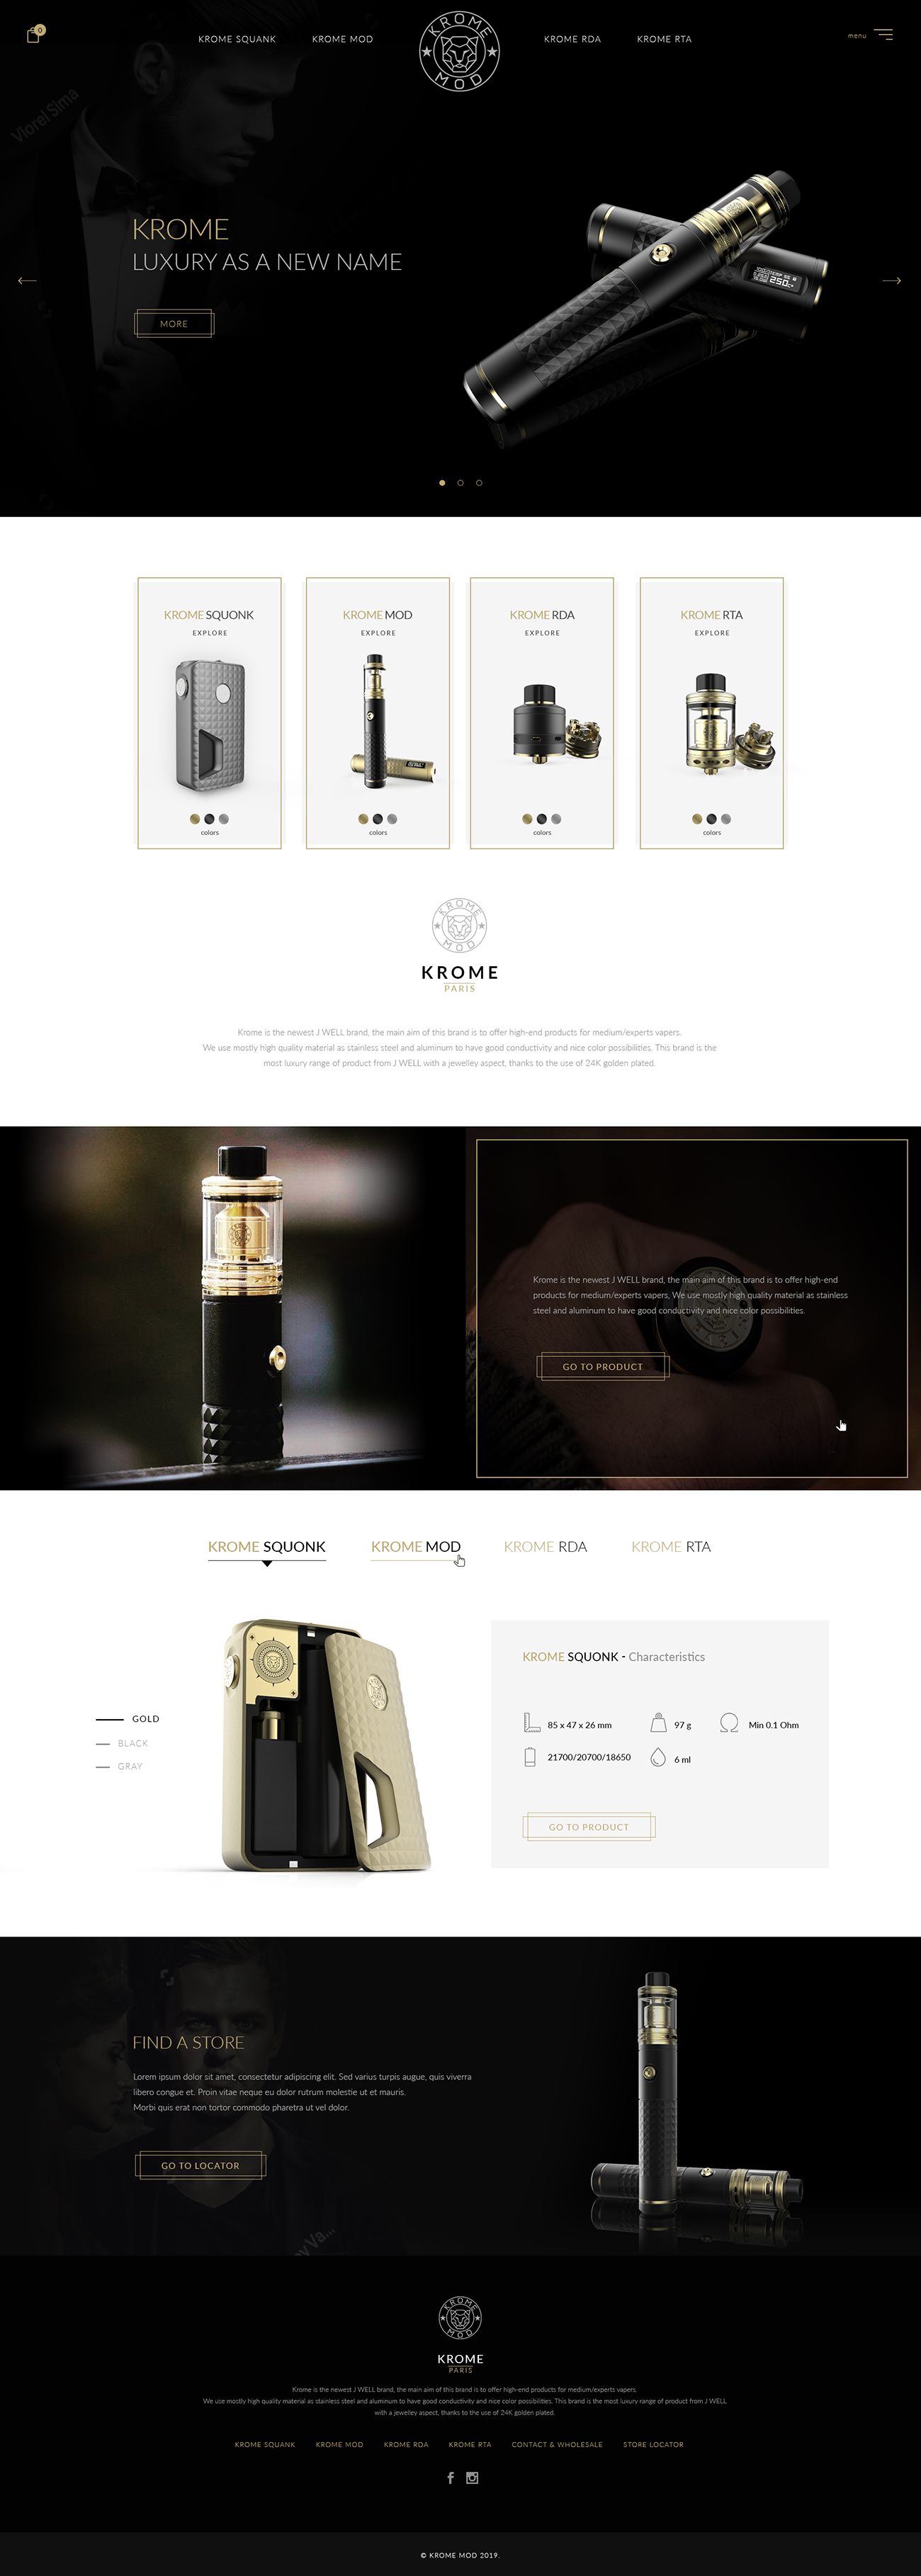 Homepage design proposal for electronic cigarette full page